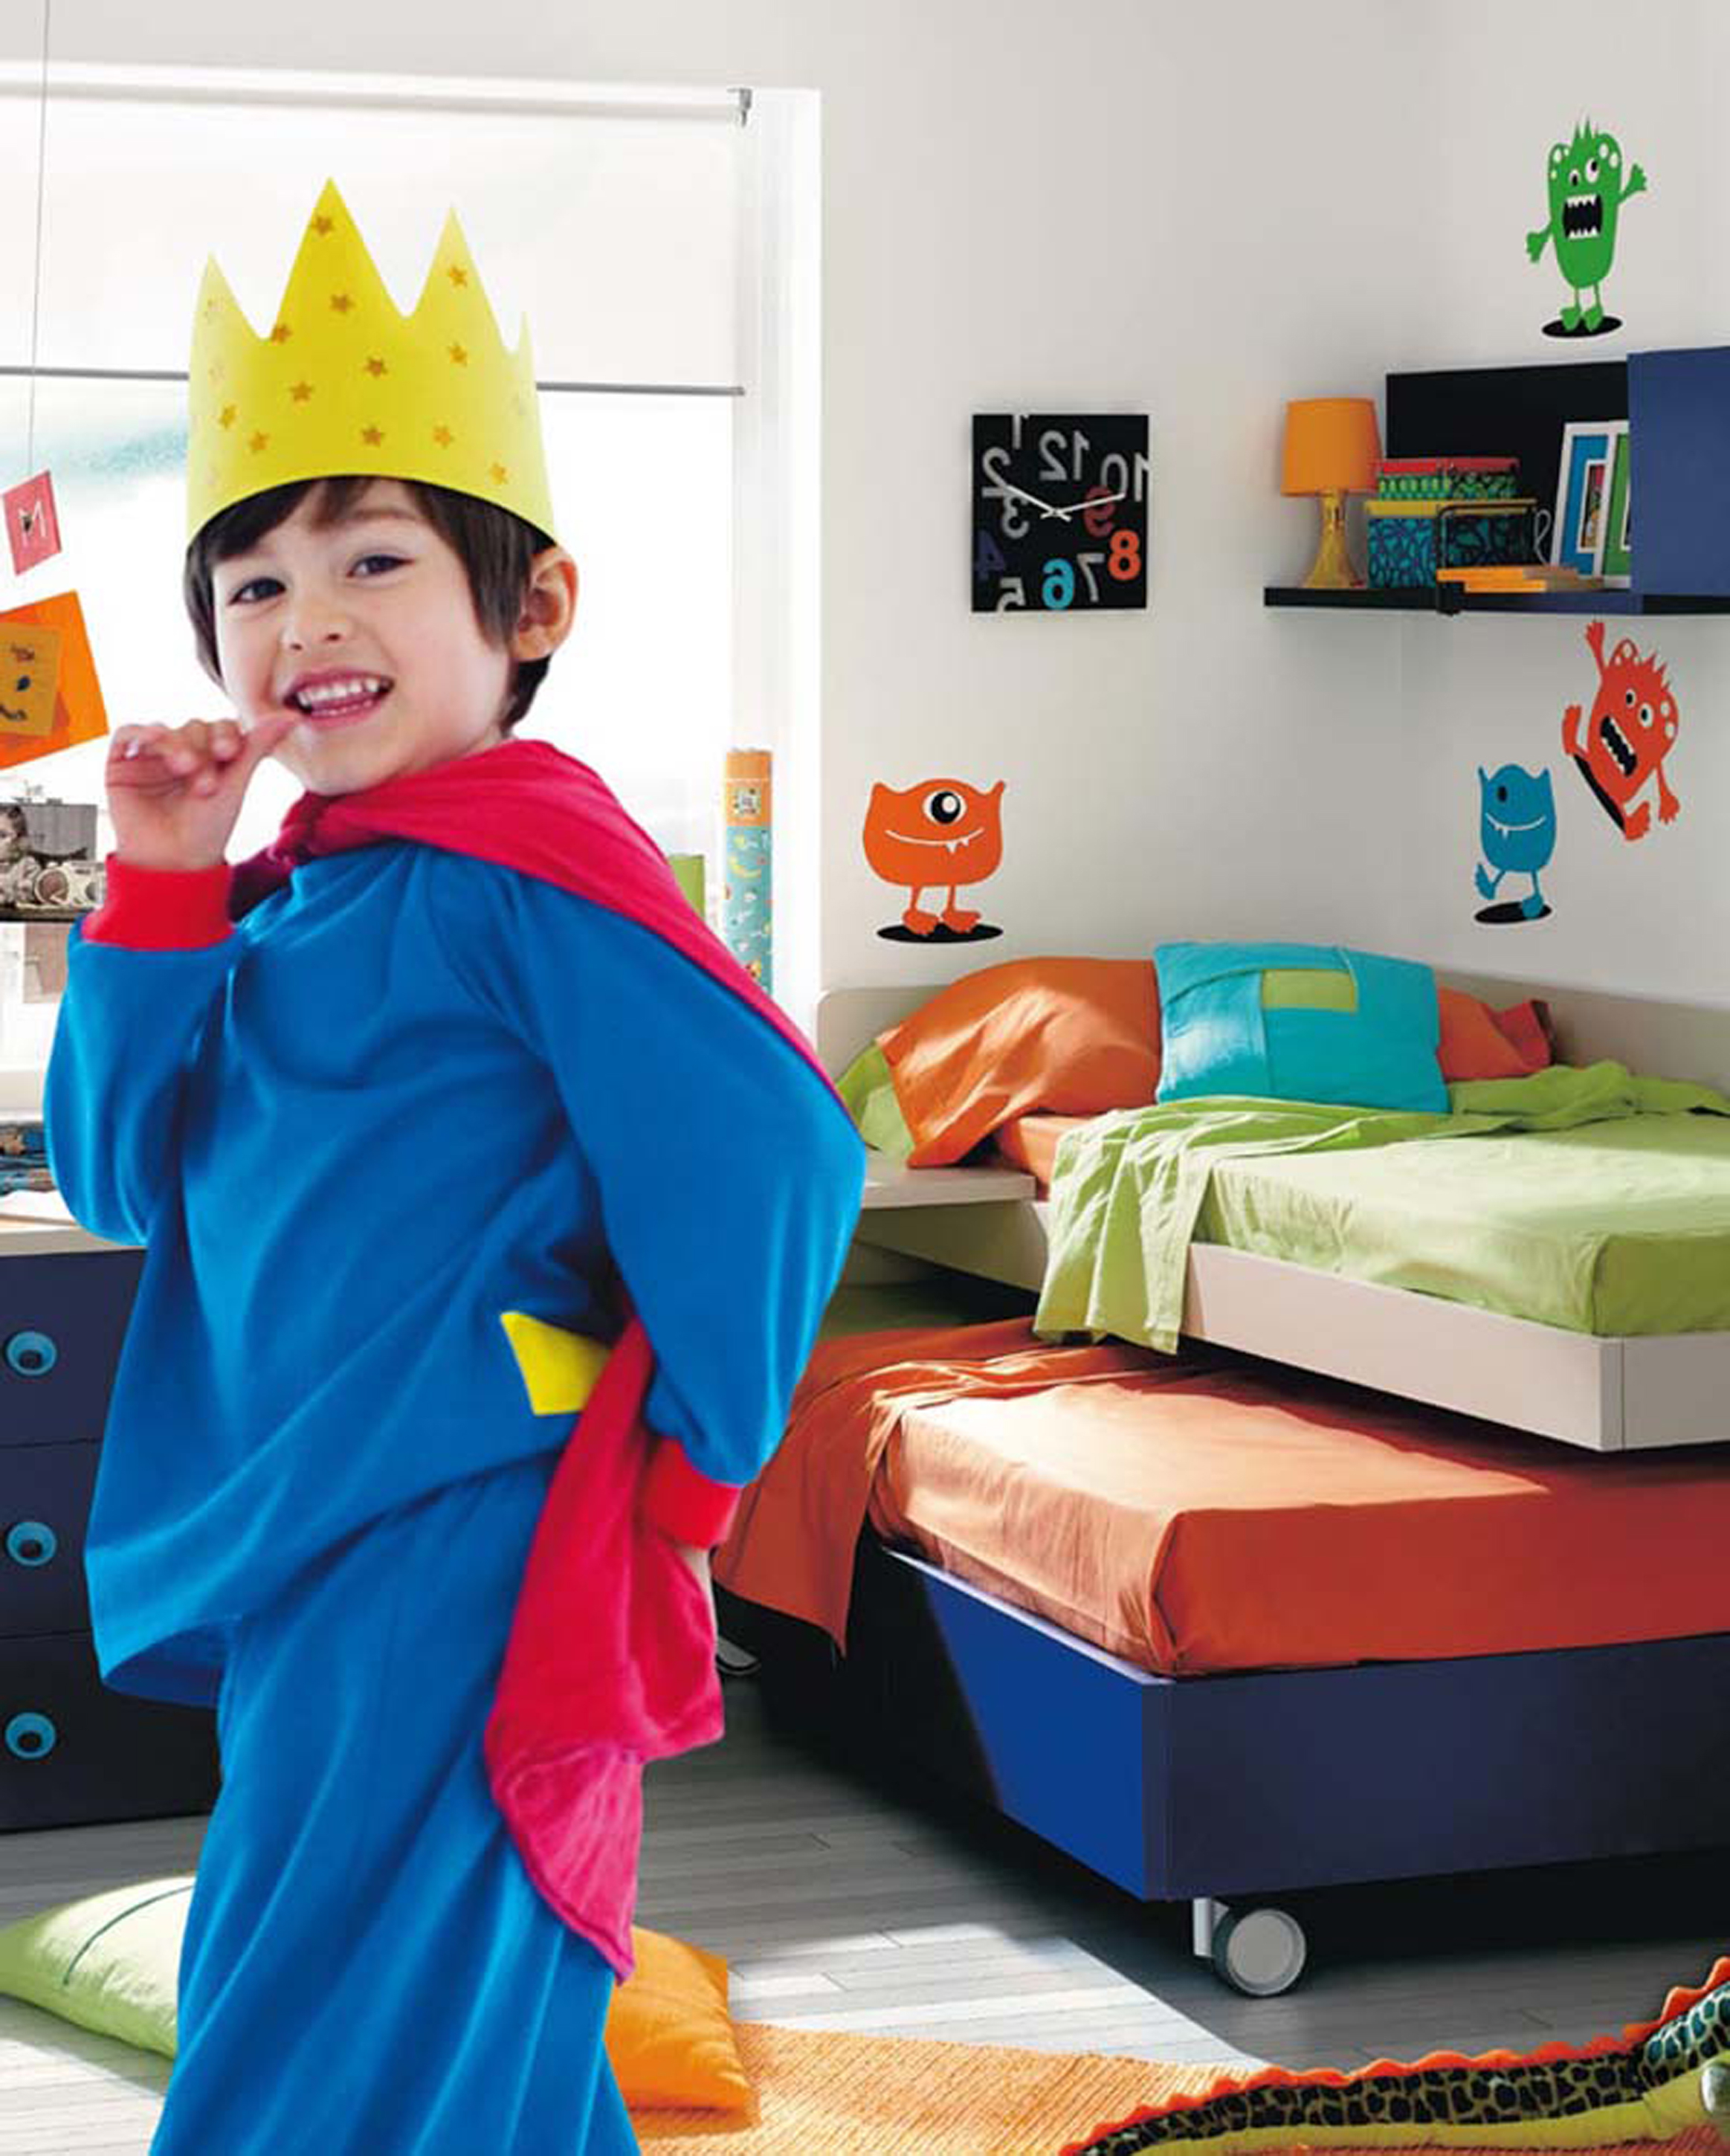 Kids Bedroom Interesting Boys Bedroom Decoration Idea With Blue Orange Bed Sheets With Light Blue Pilloe White Wall With Colorful Monster Motive And Orange Desk Lamp Impressive Boys (Image 18 of 28)